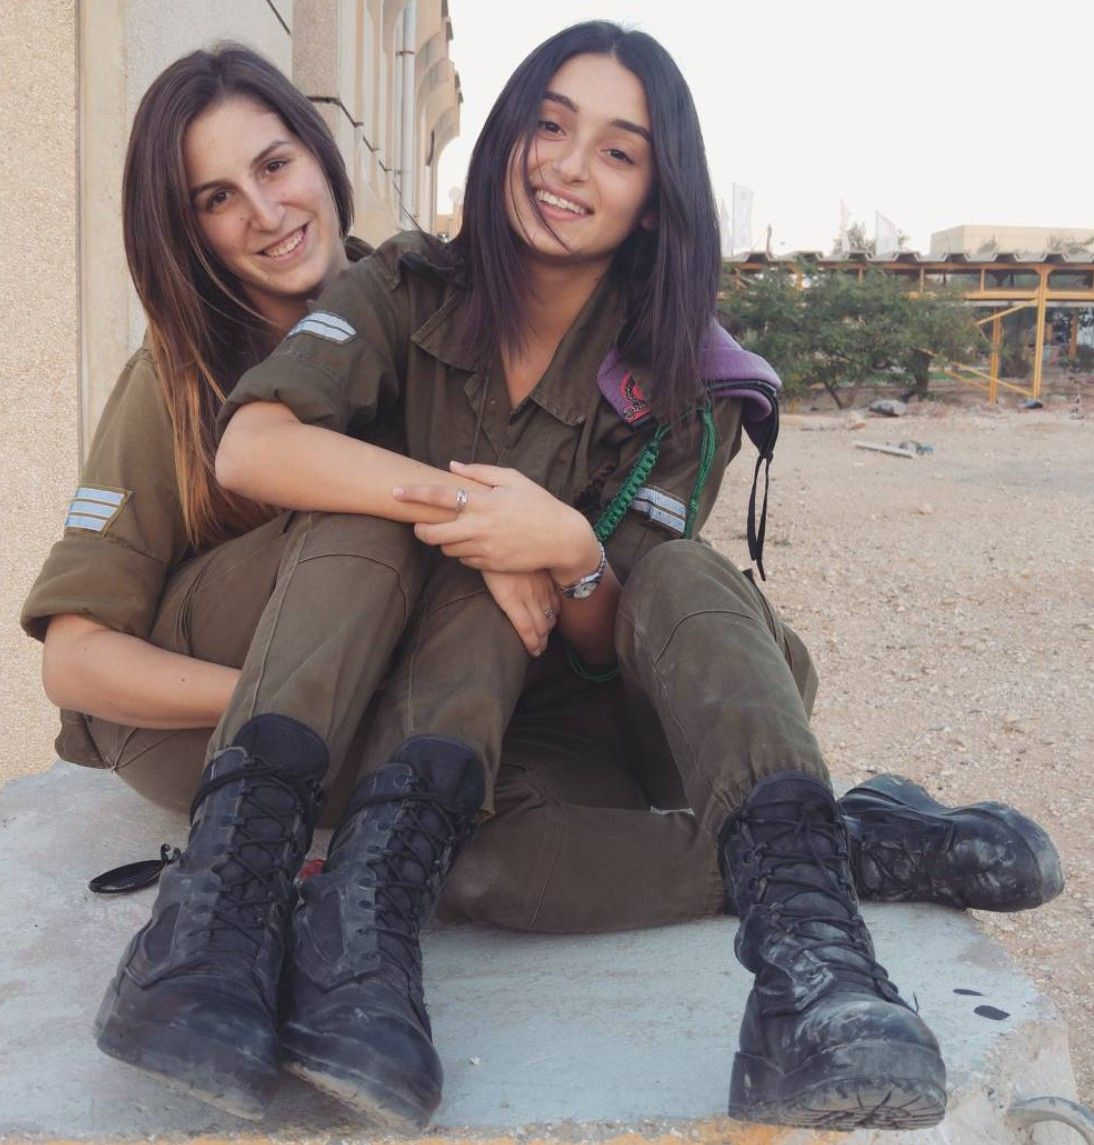 IDF - Israel Defense Forces - Women Israeli Girls, Army Police, Idf Women,